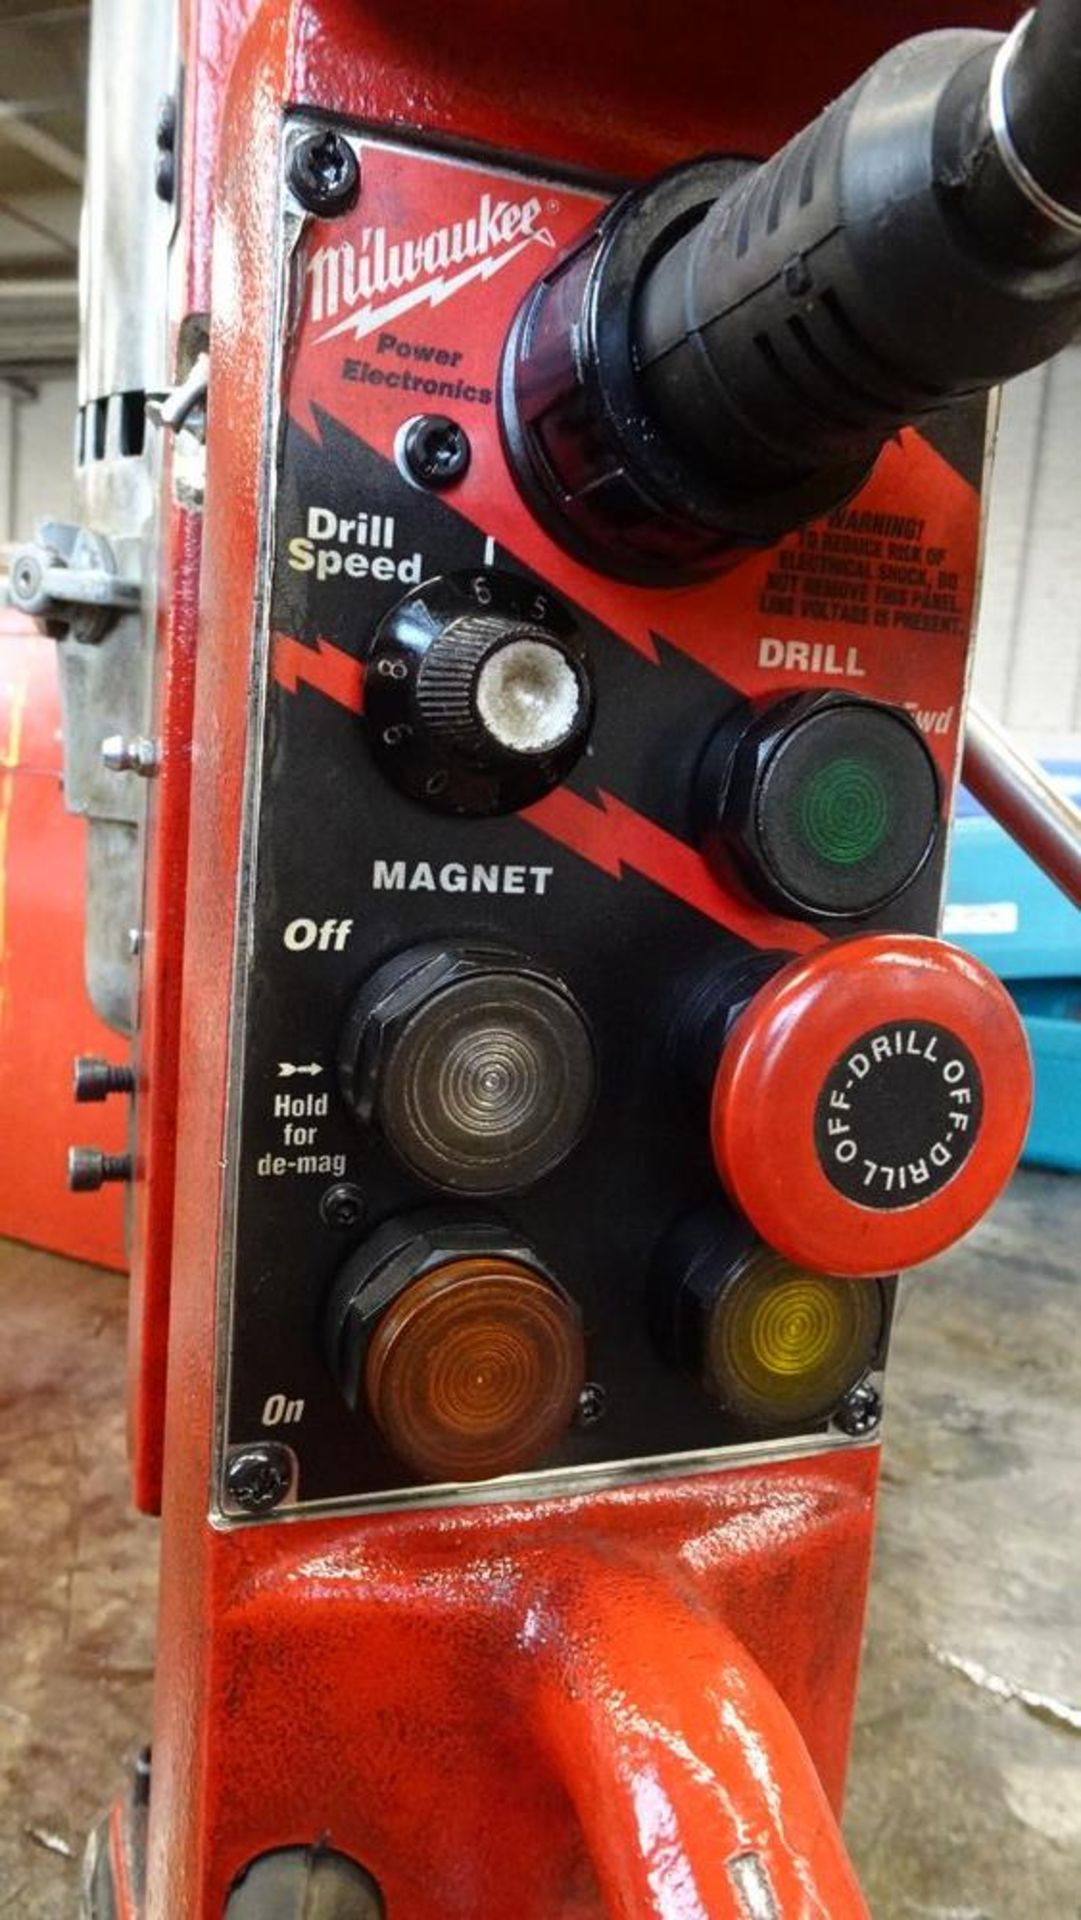 Lot 2 - MILWAUKEE 4203 MAGNETIC PORTABLE DRILL PRESS, 120 VOLTS, S/N A195303061